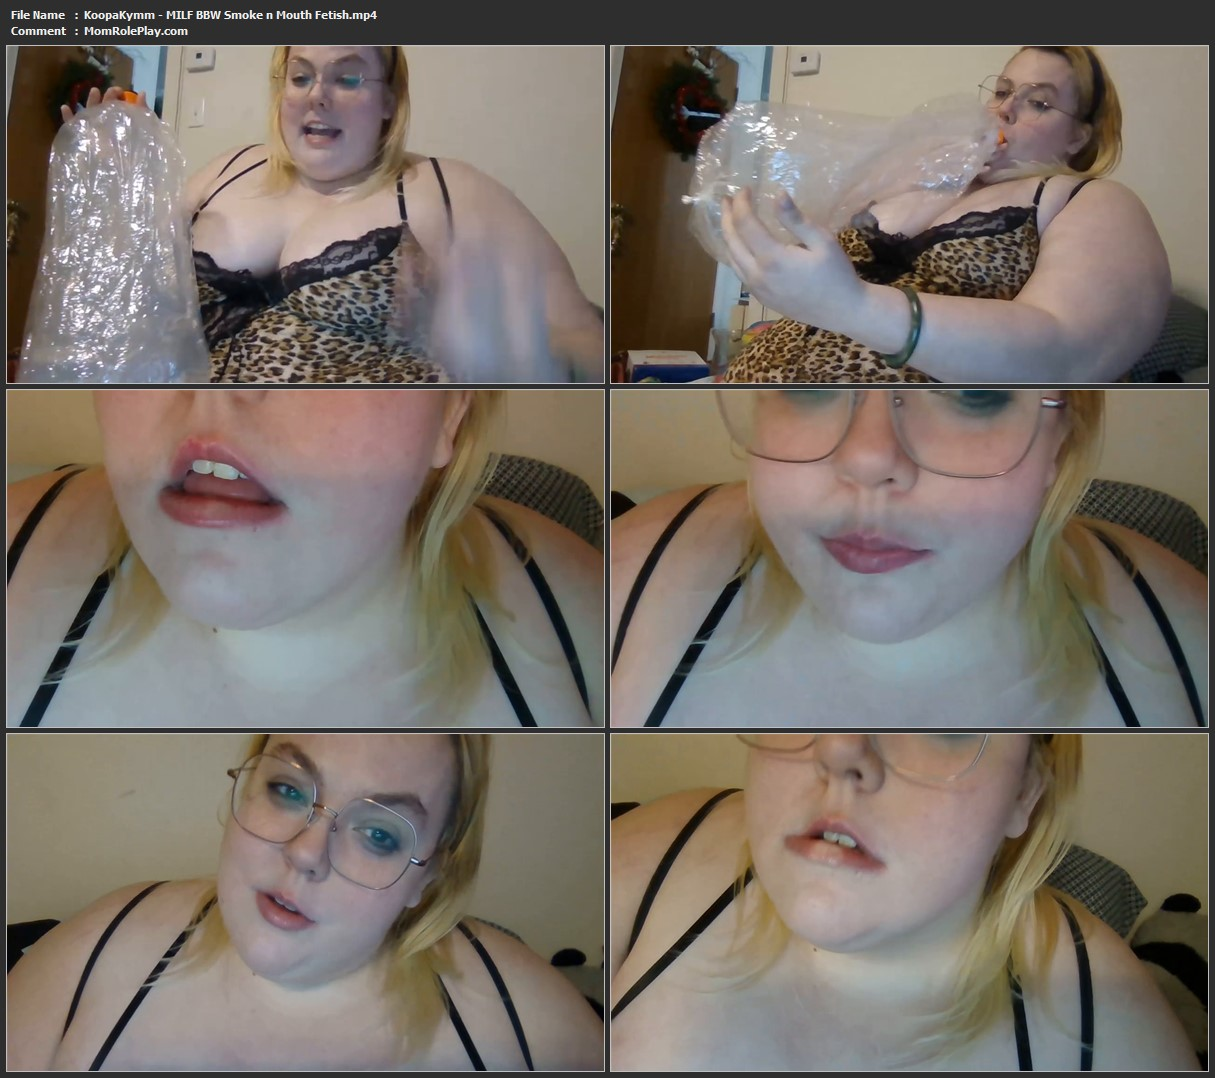 KoopaKymm - MILF BBW Smoke n Mouth Fetish